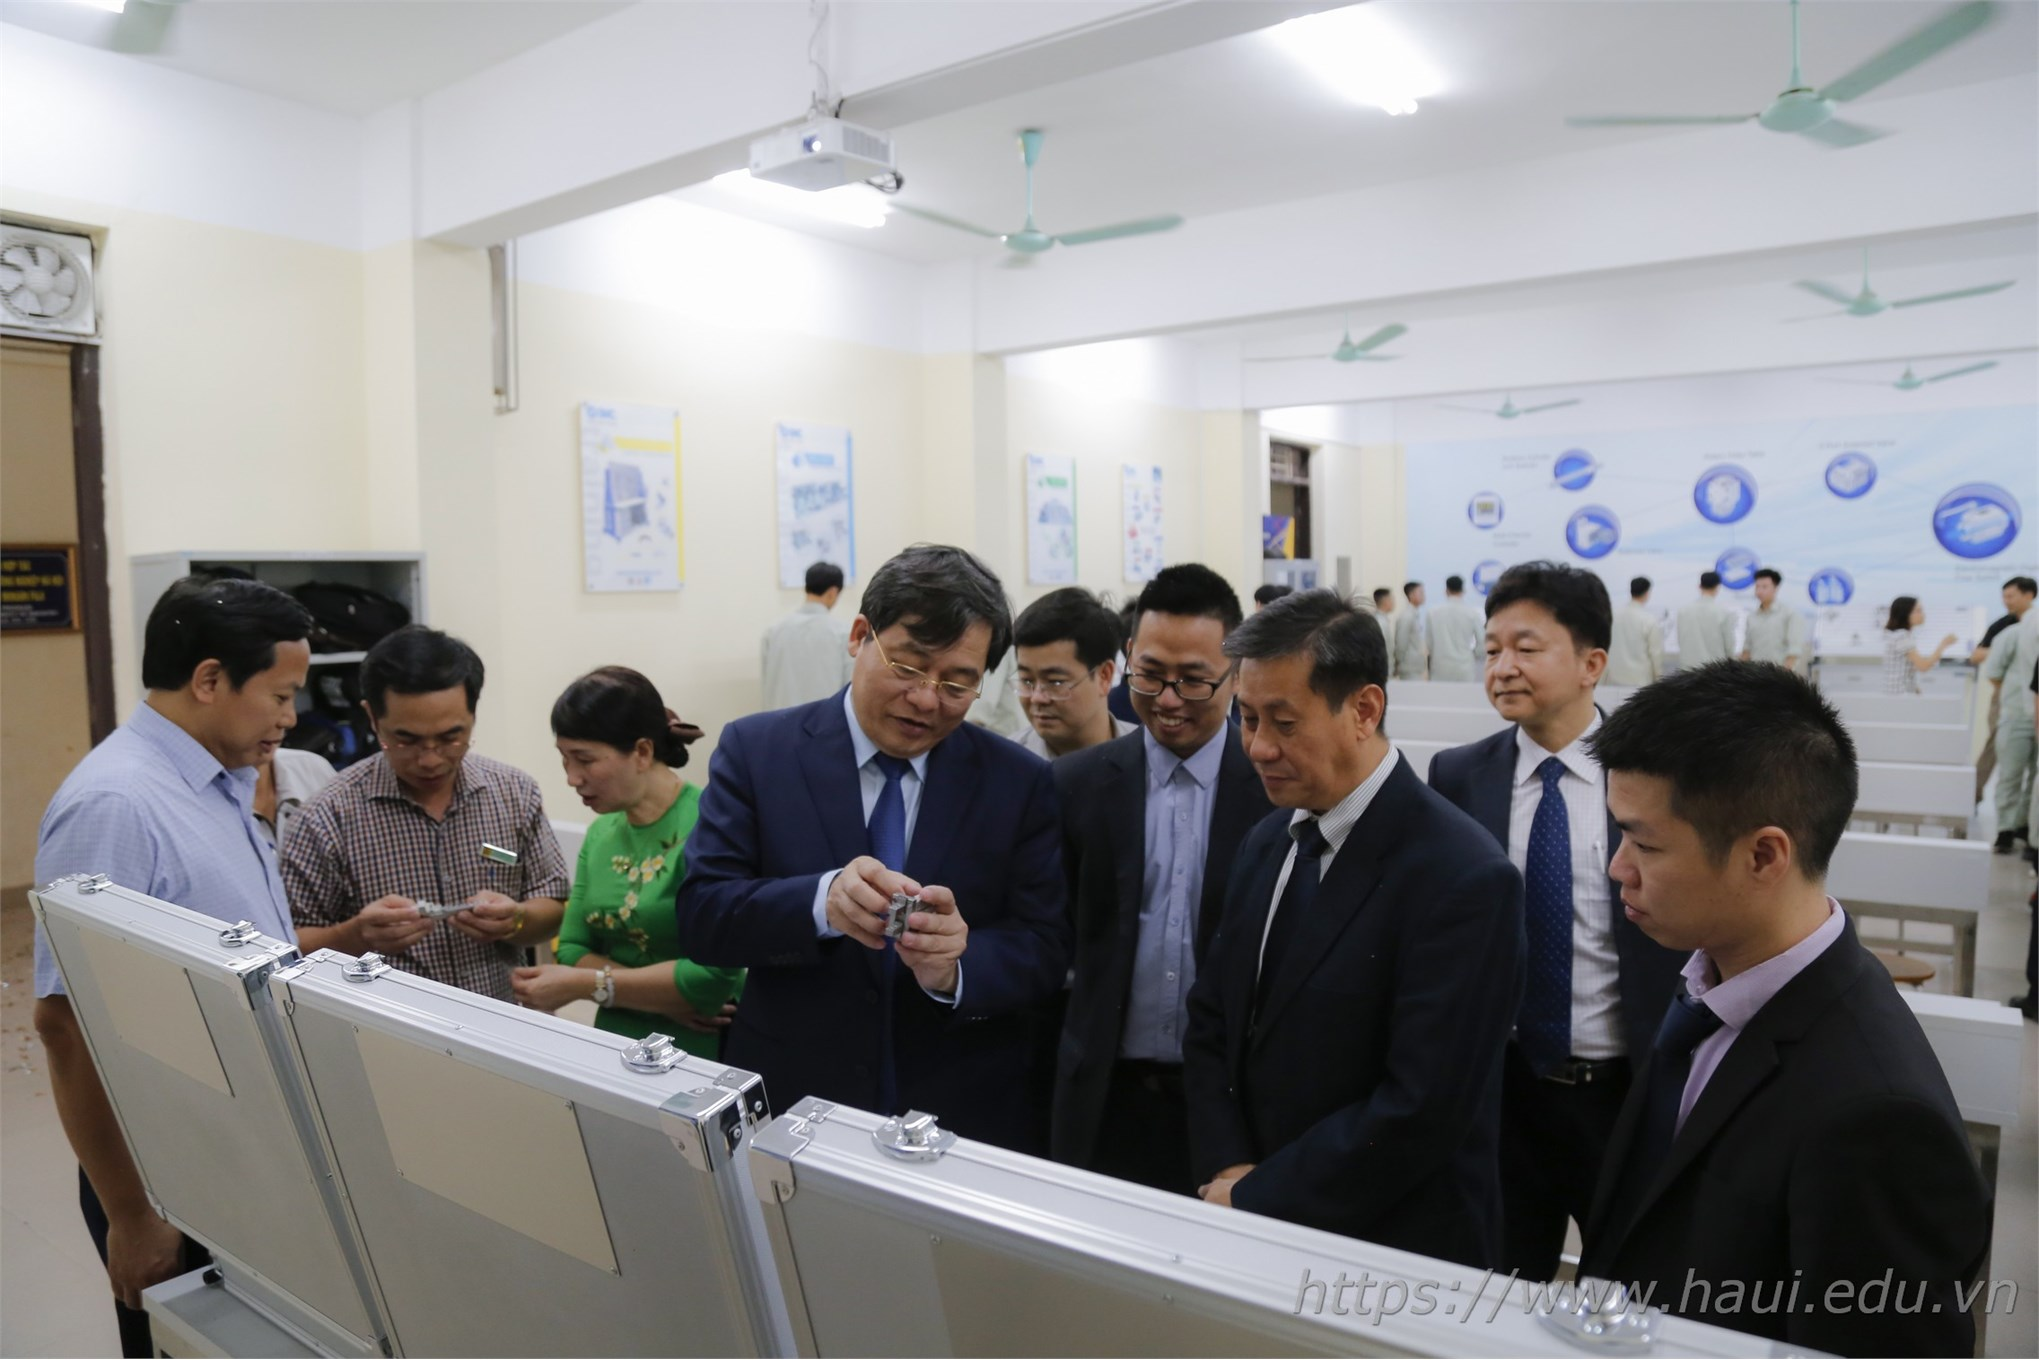 Hanoi University of Industry launch a new pneumatic lab worth 2.3 billion VND